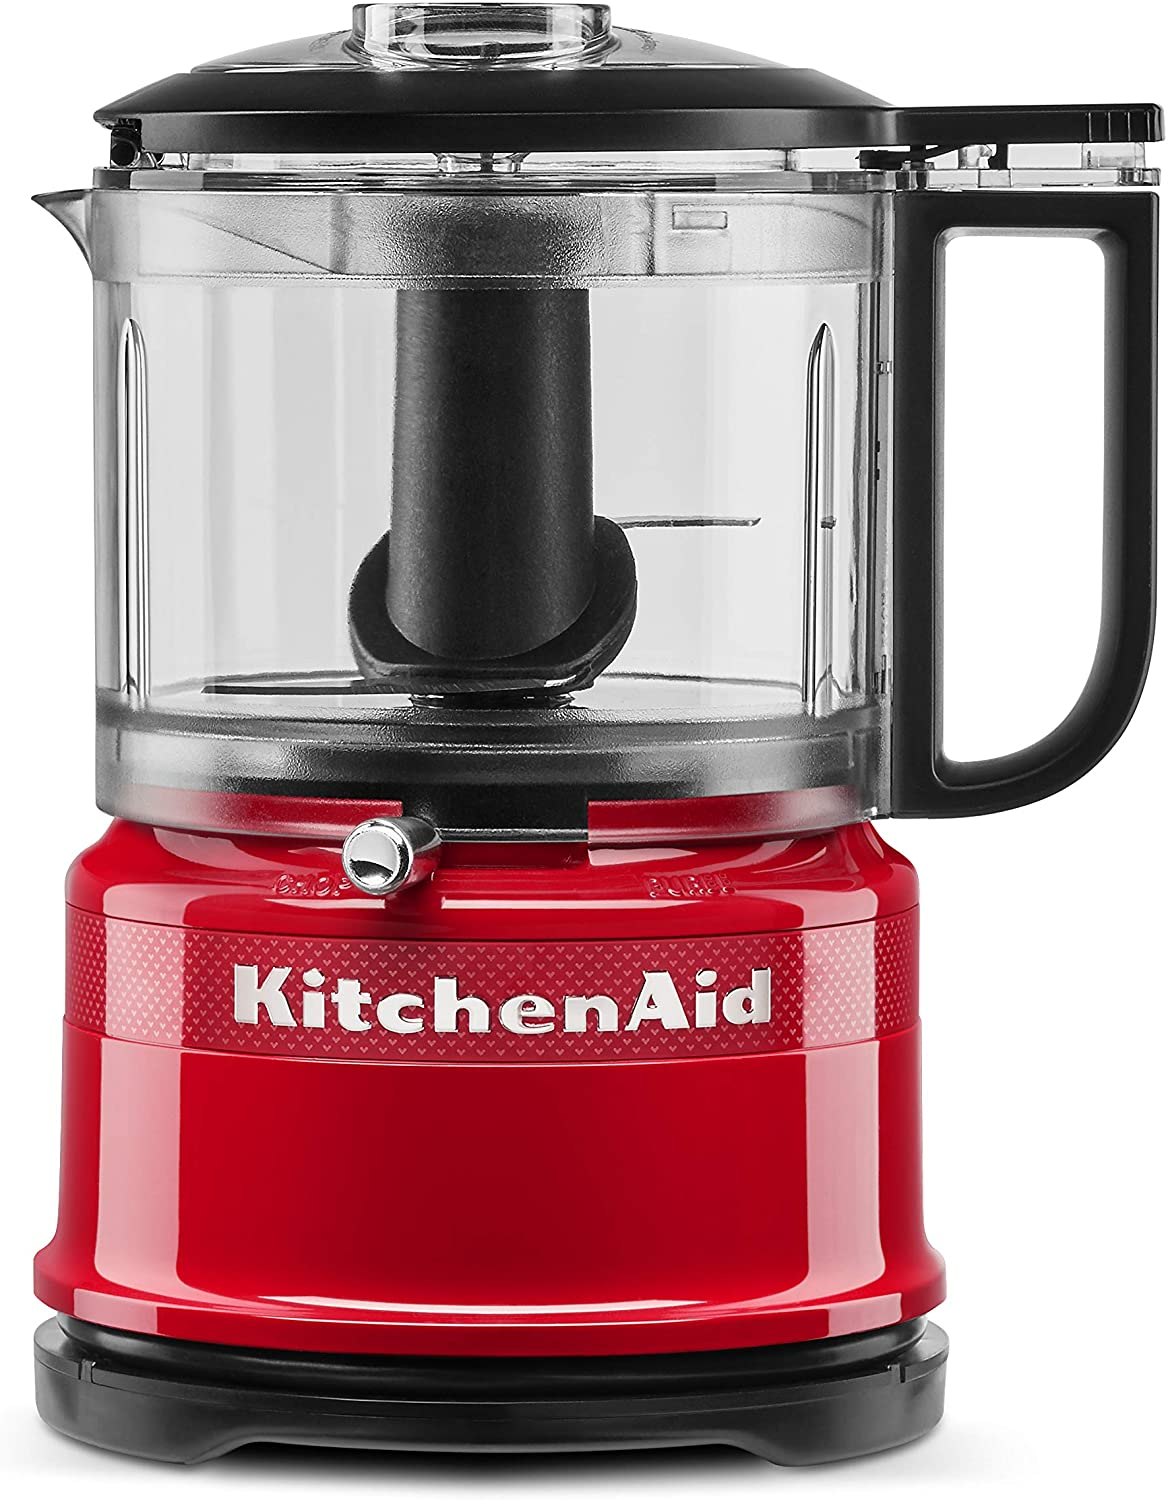 KitchenAid KFC3516QHSD 100 Year Limited Edition Queen of Hearts Food Chopper, 3.5 Cup, Passion Red